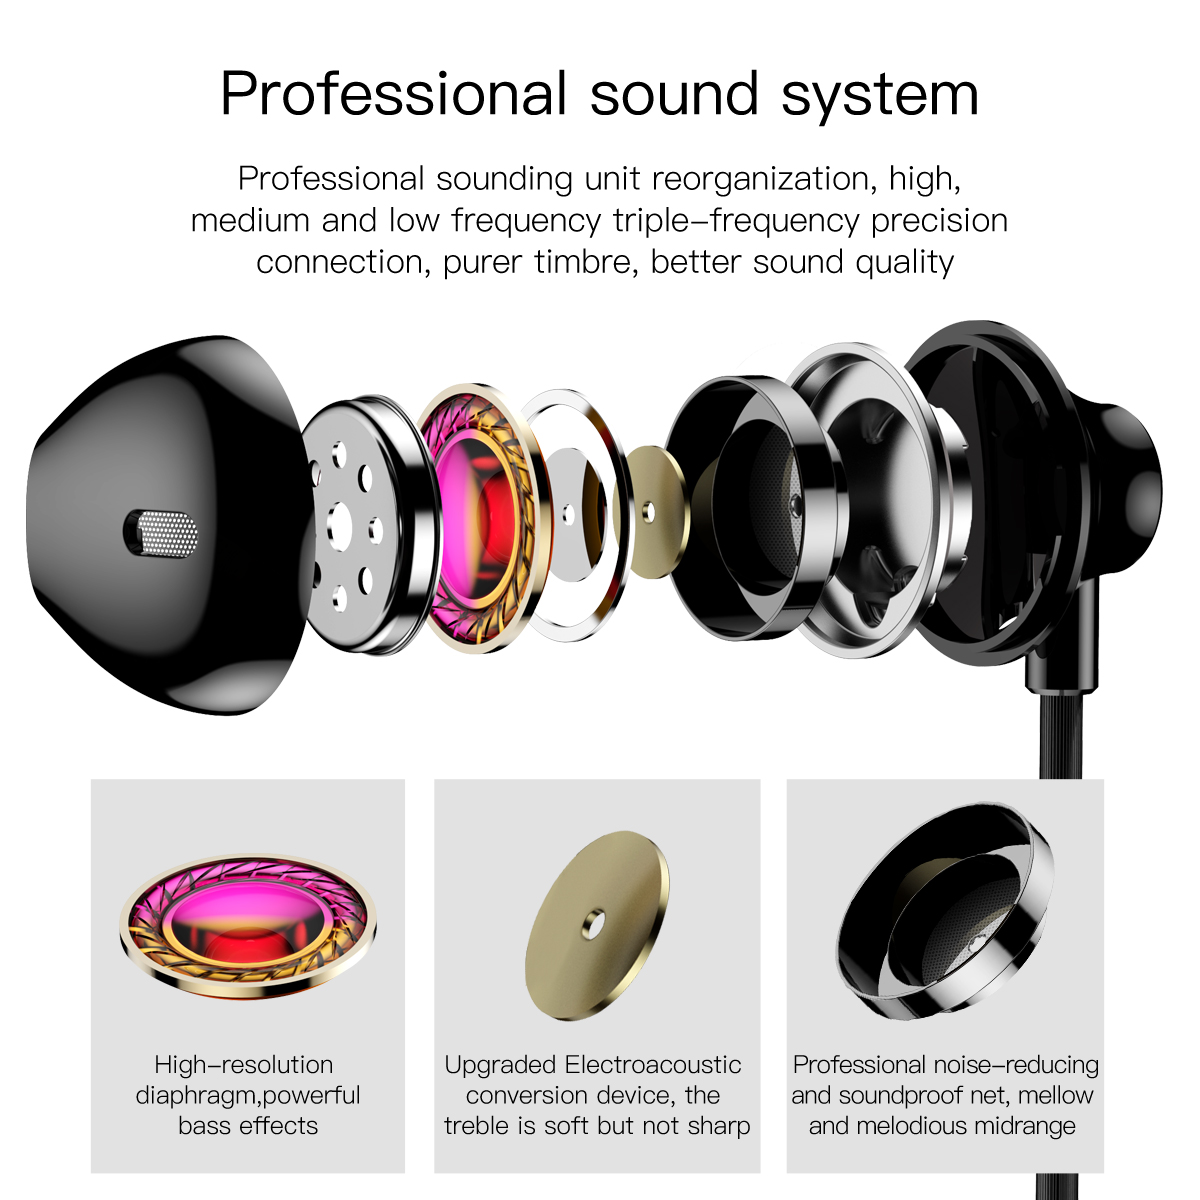 Diagram Soft Headphones Wiring Data Schematic Headphone Jack Also Headset With Mic Baseus Wired Earphone In Ear Stereo Bass Sound 3 5 Rh Aliexpress Com Colors